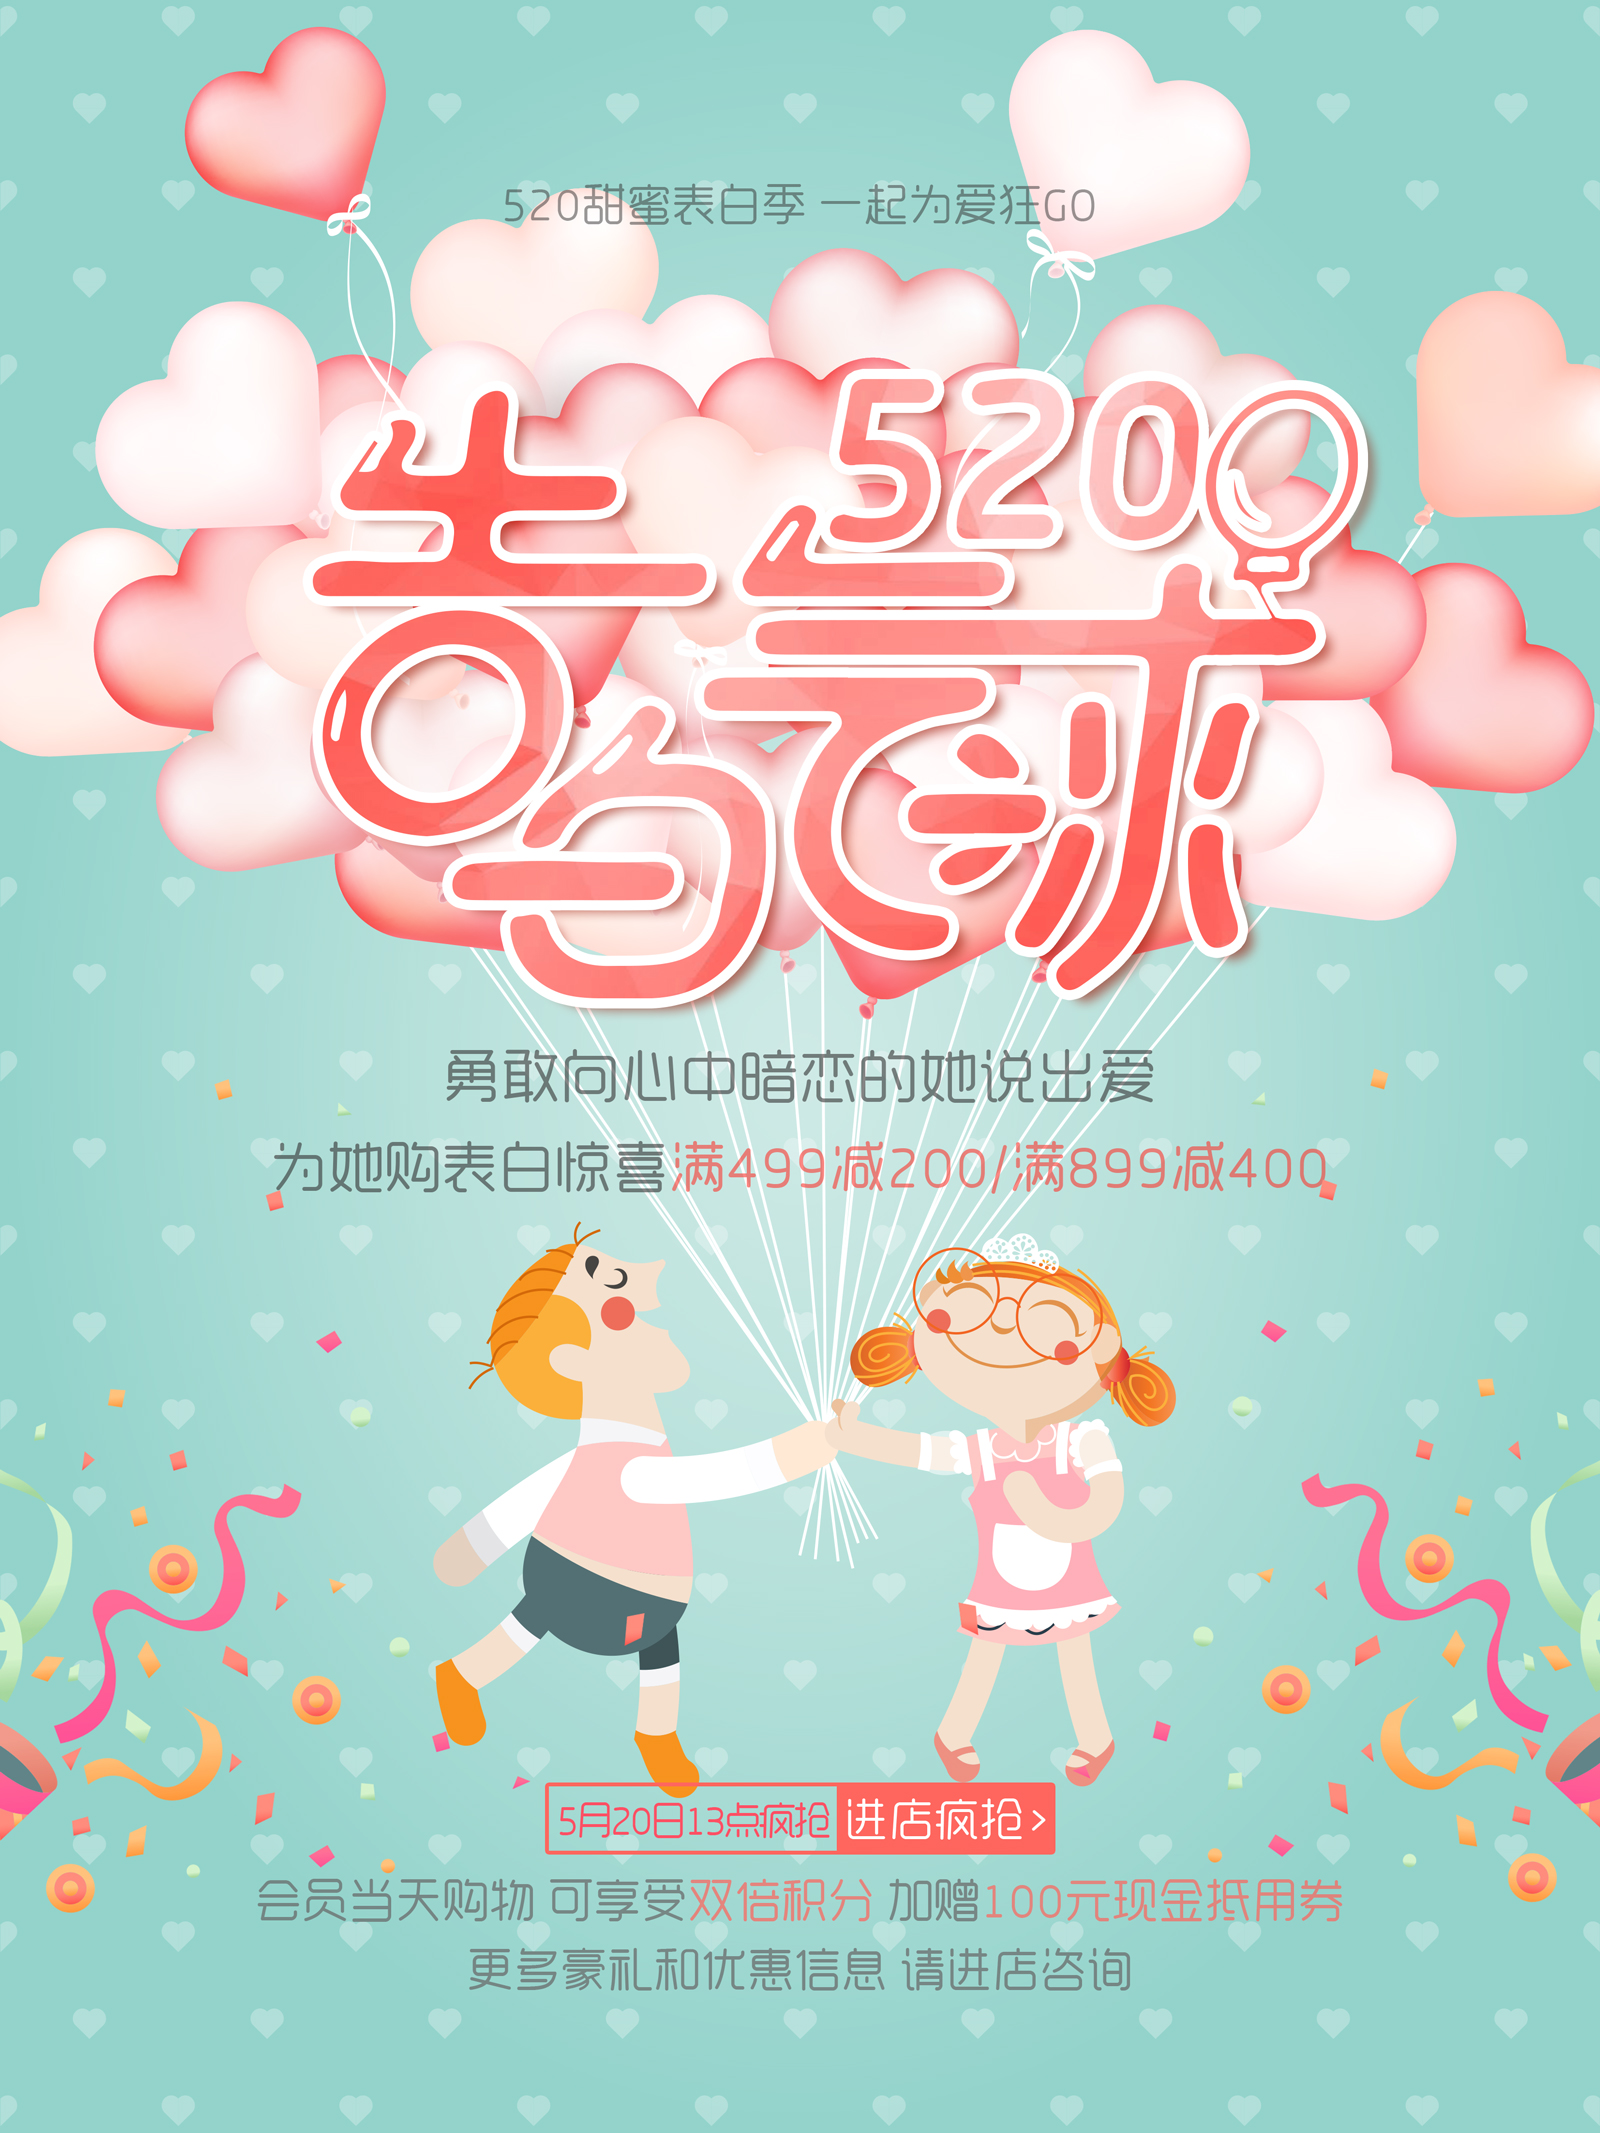 chinesefontdesign.com 2017 05 23 01 31 11 014792 520 courtship balloon, Valentines Day posters China PSD File Free Download Valentines Day ribbon decoration promotions heart balloon cartoon children illustrations activities 520 posters 520 love the balloon promotional activities posters 520 I love you 520 event posters 520 art words